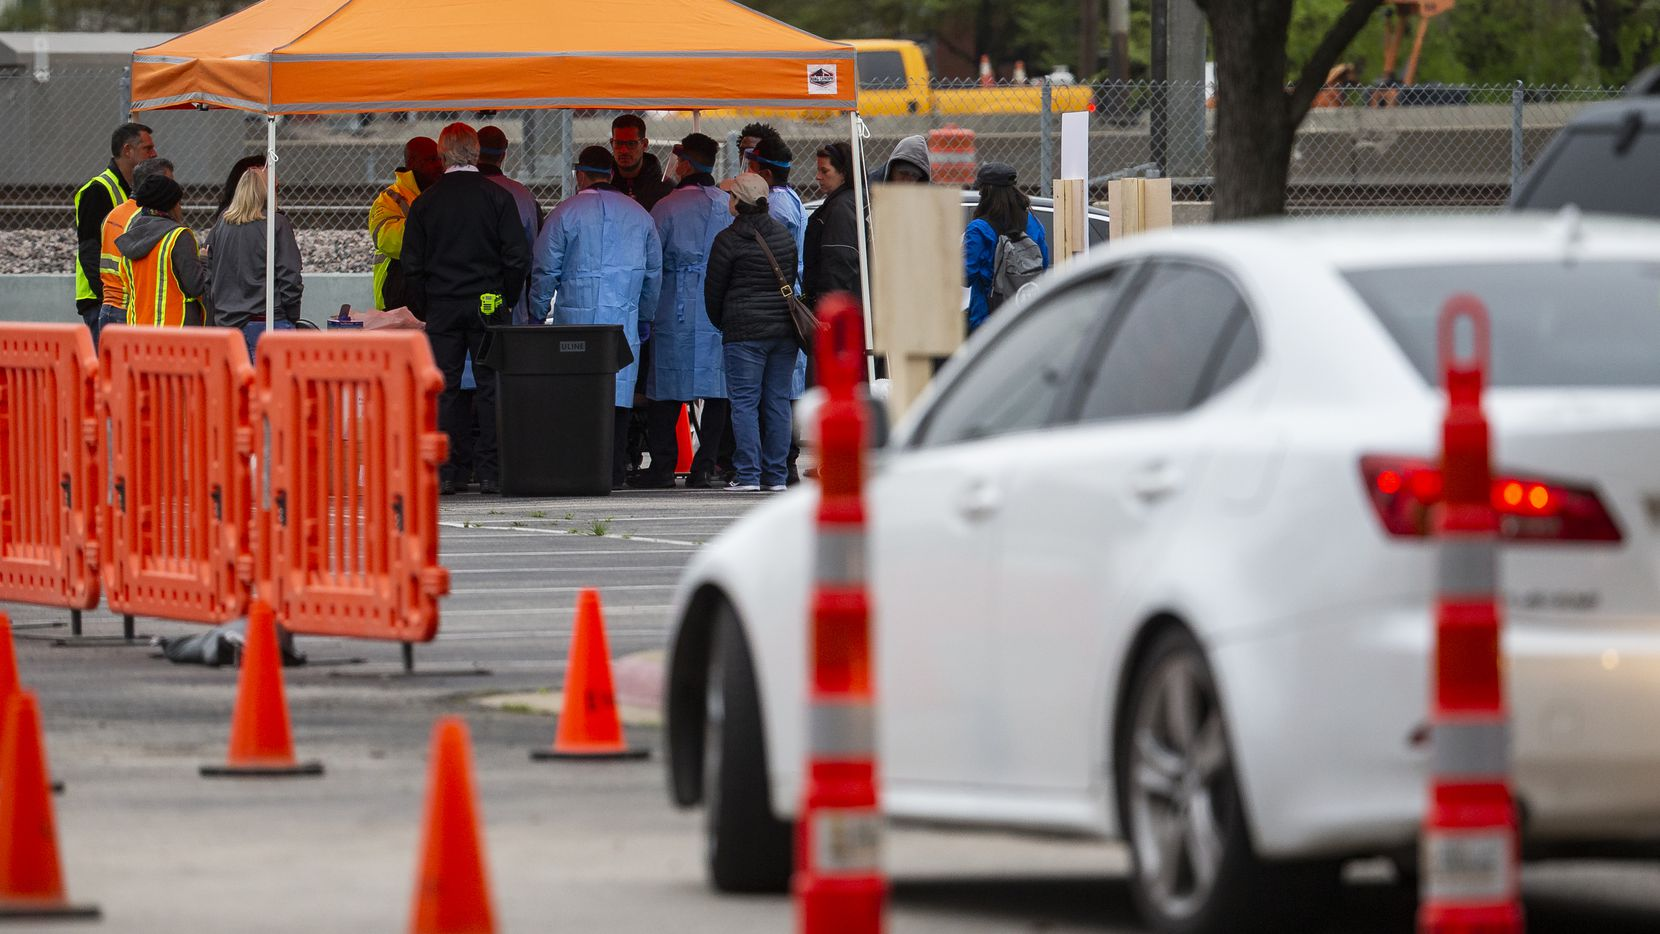 People wait in their cars for screening at the COVID-19 testing site. Strict criteria were in place for who would be cleared for a test.